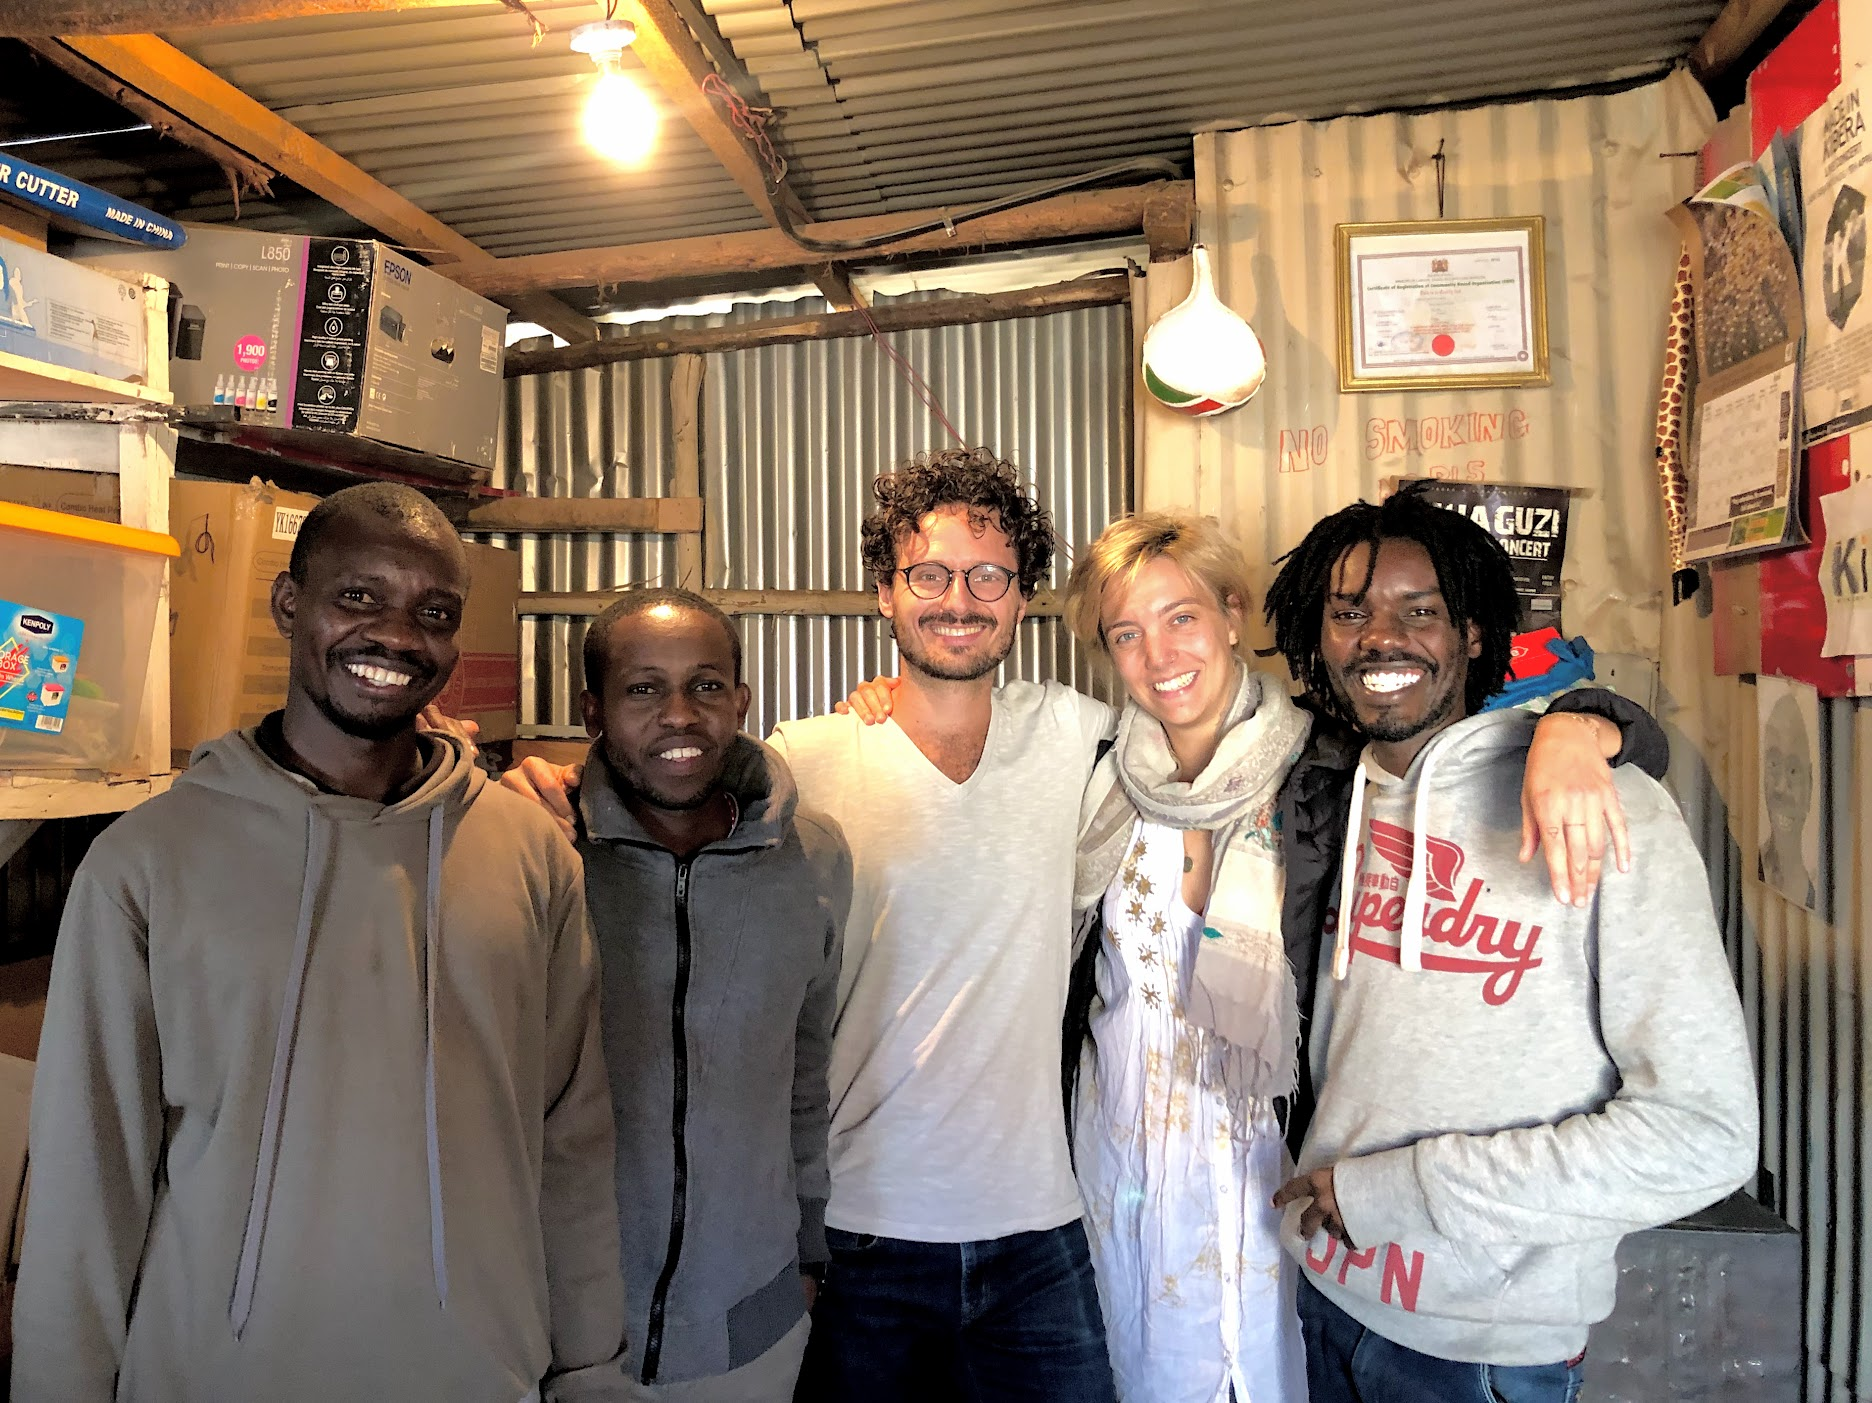 Kibera Creative Arts team, Charlotte and I during our first meeting at their office in Kibera.